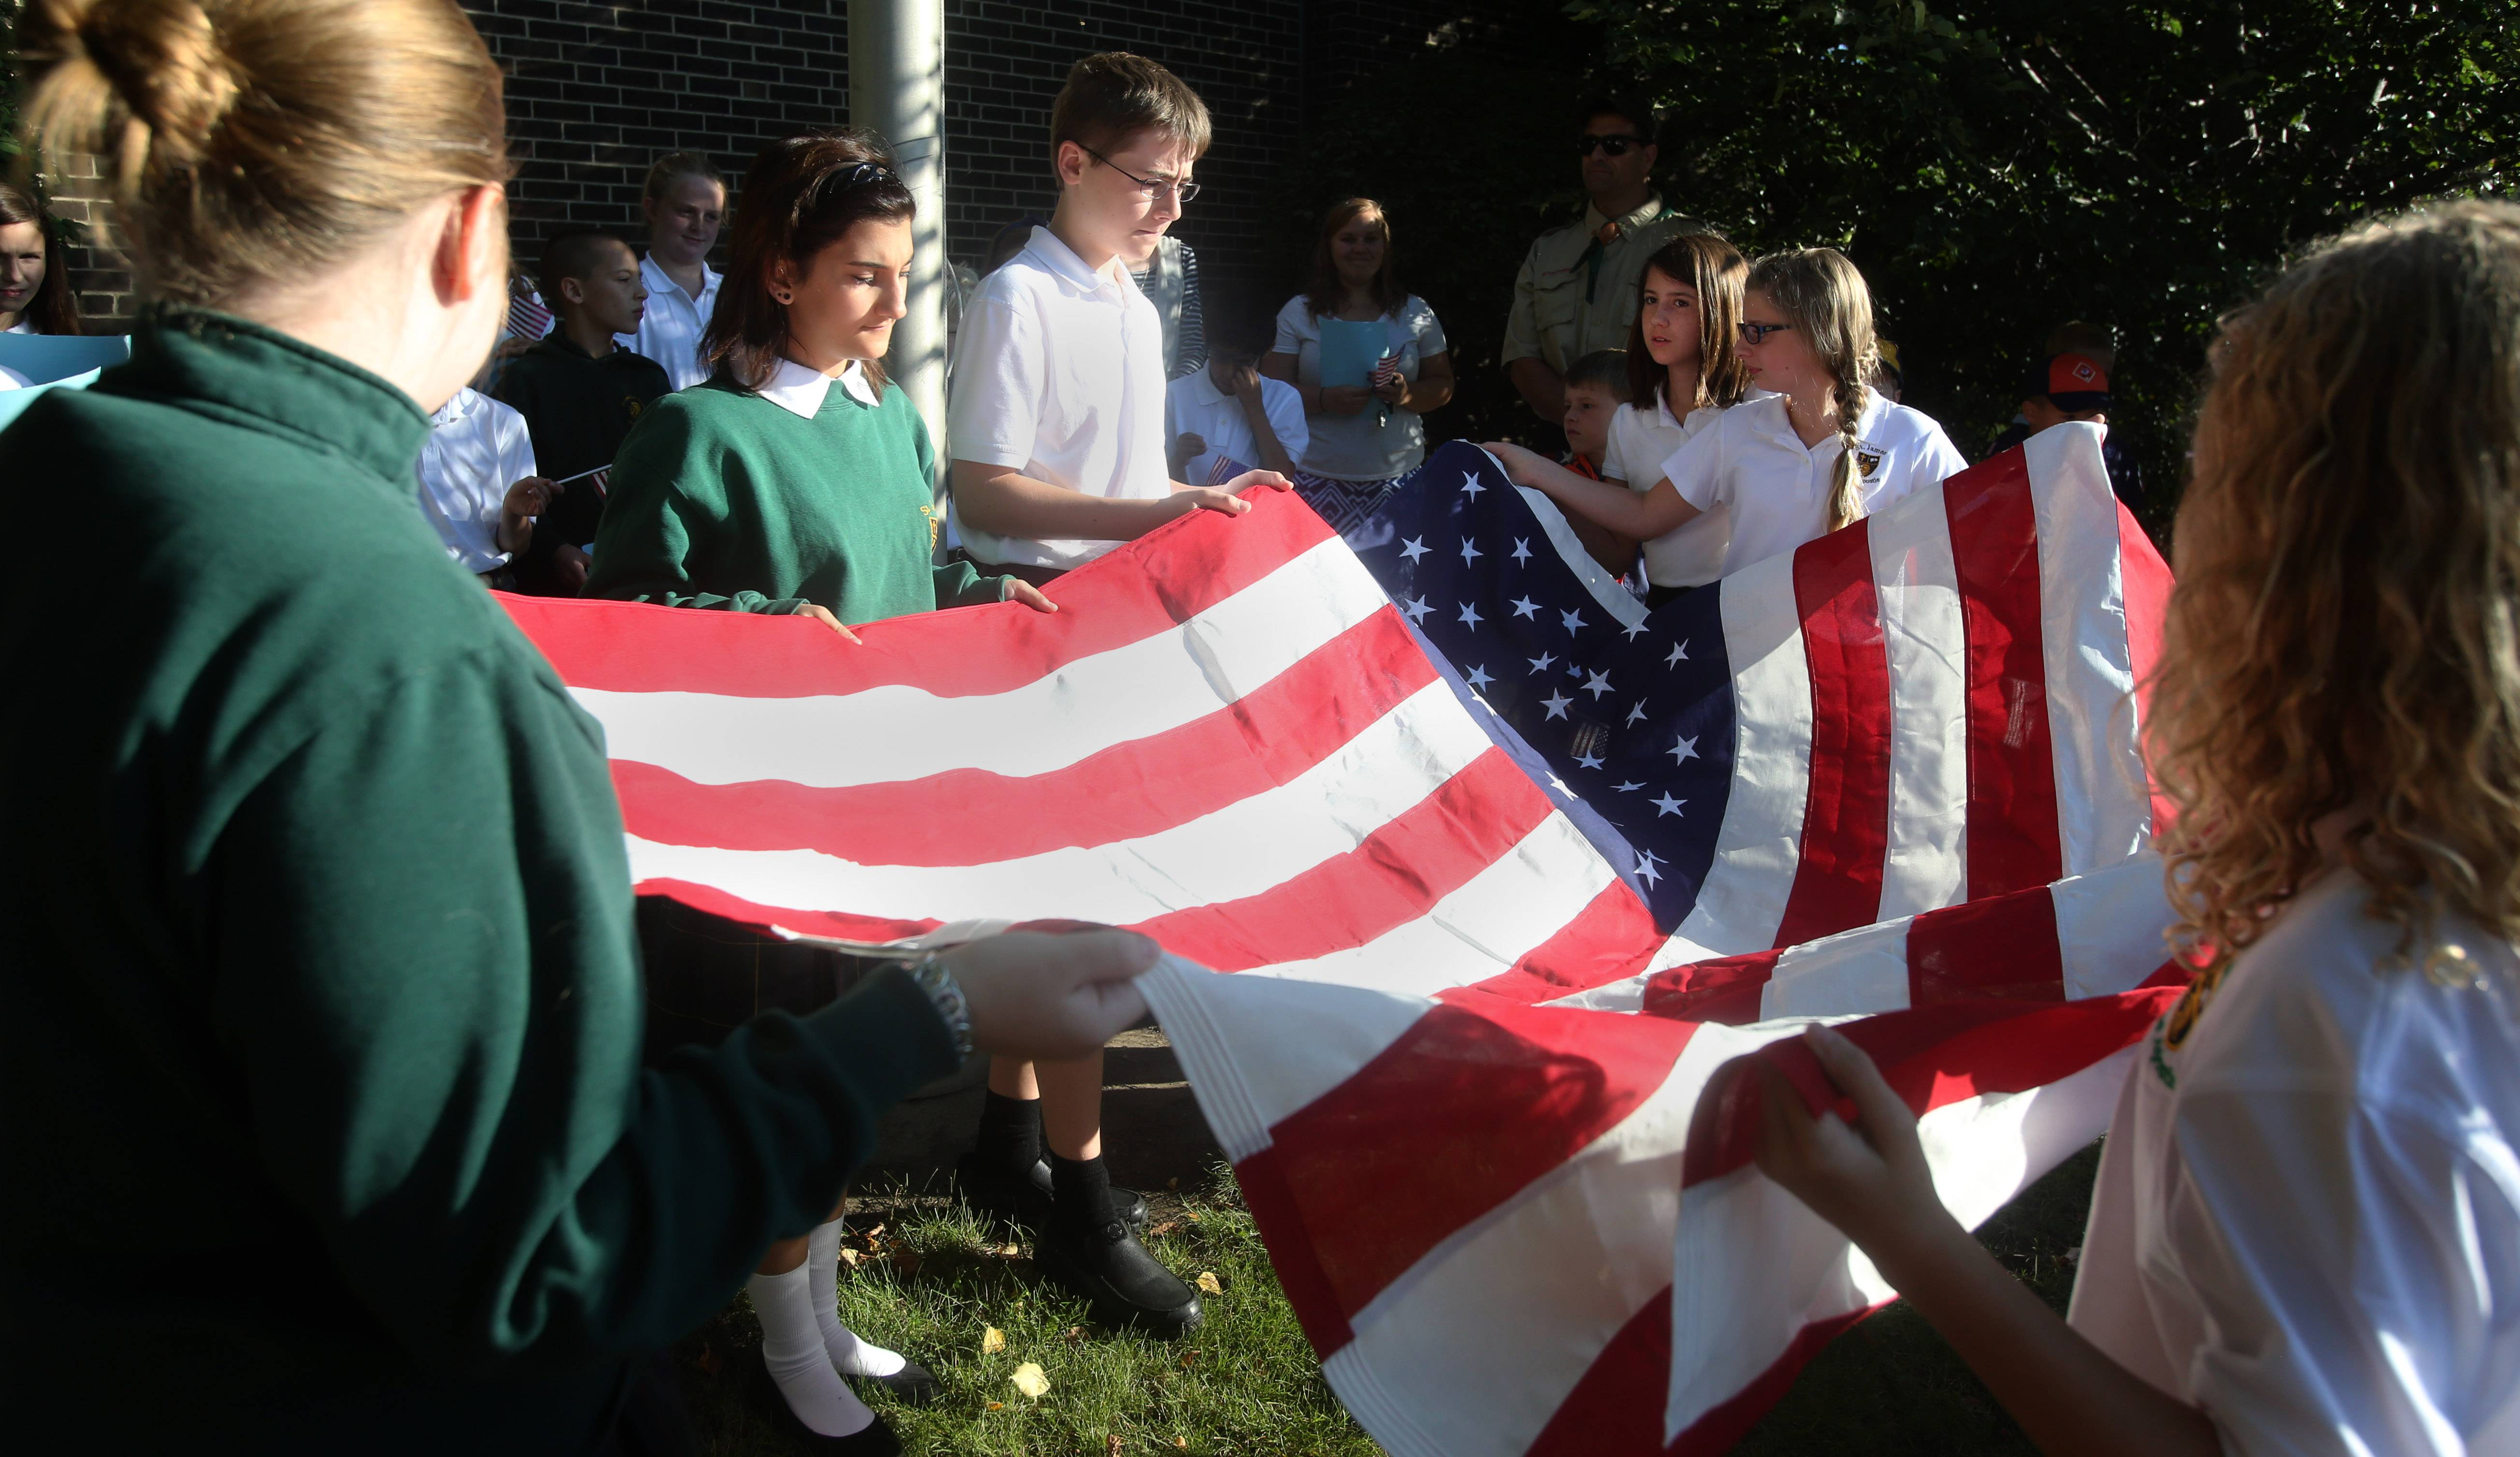 Students from St. James the Apostle school in Glen Ellyn prepare to fly its brand new 5x8 foot flag for the first time.